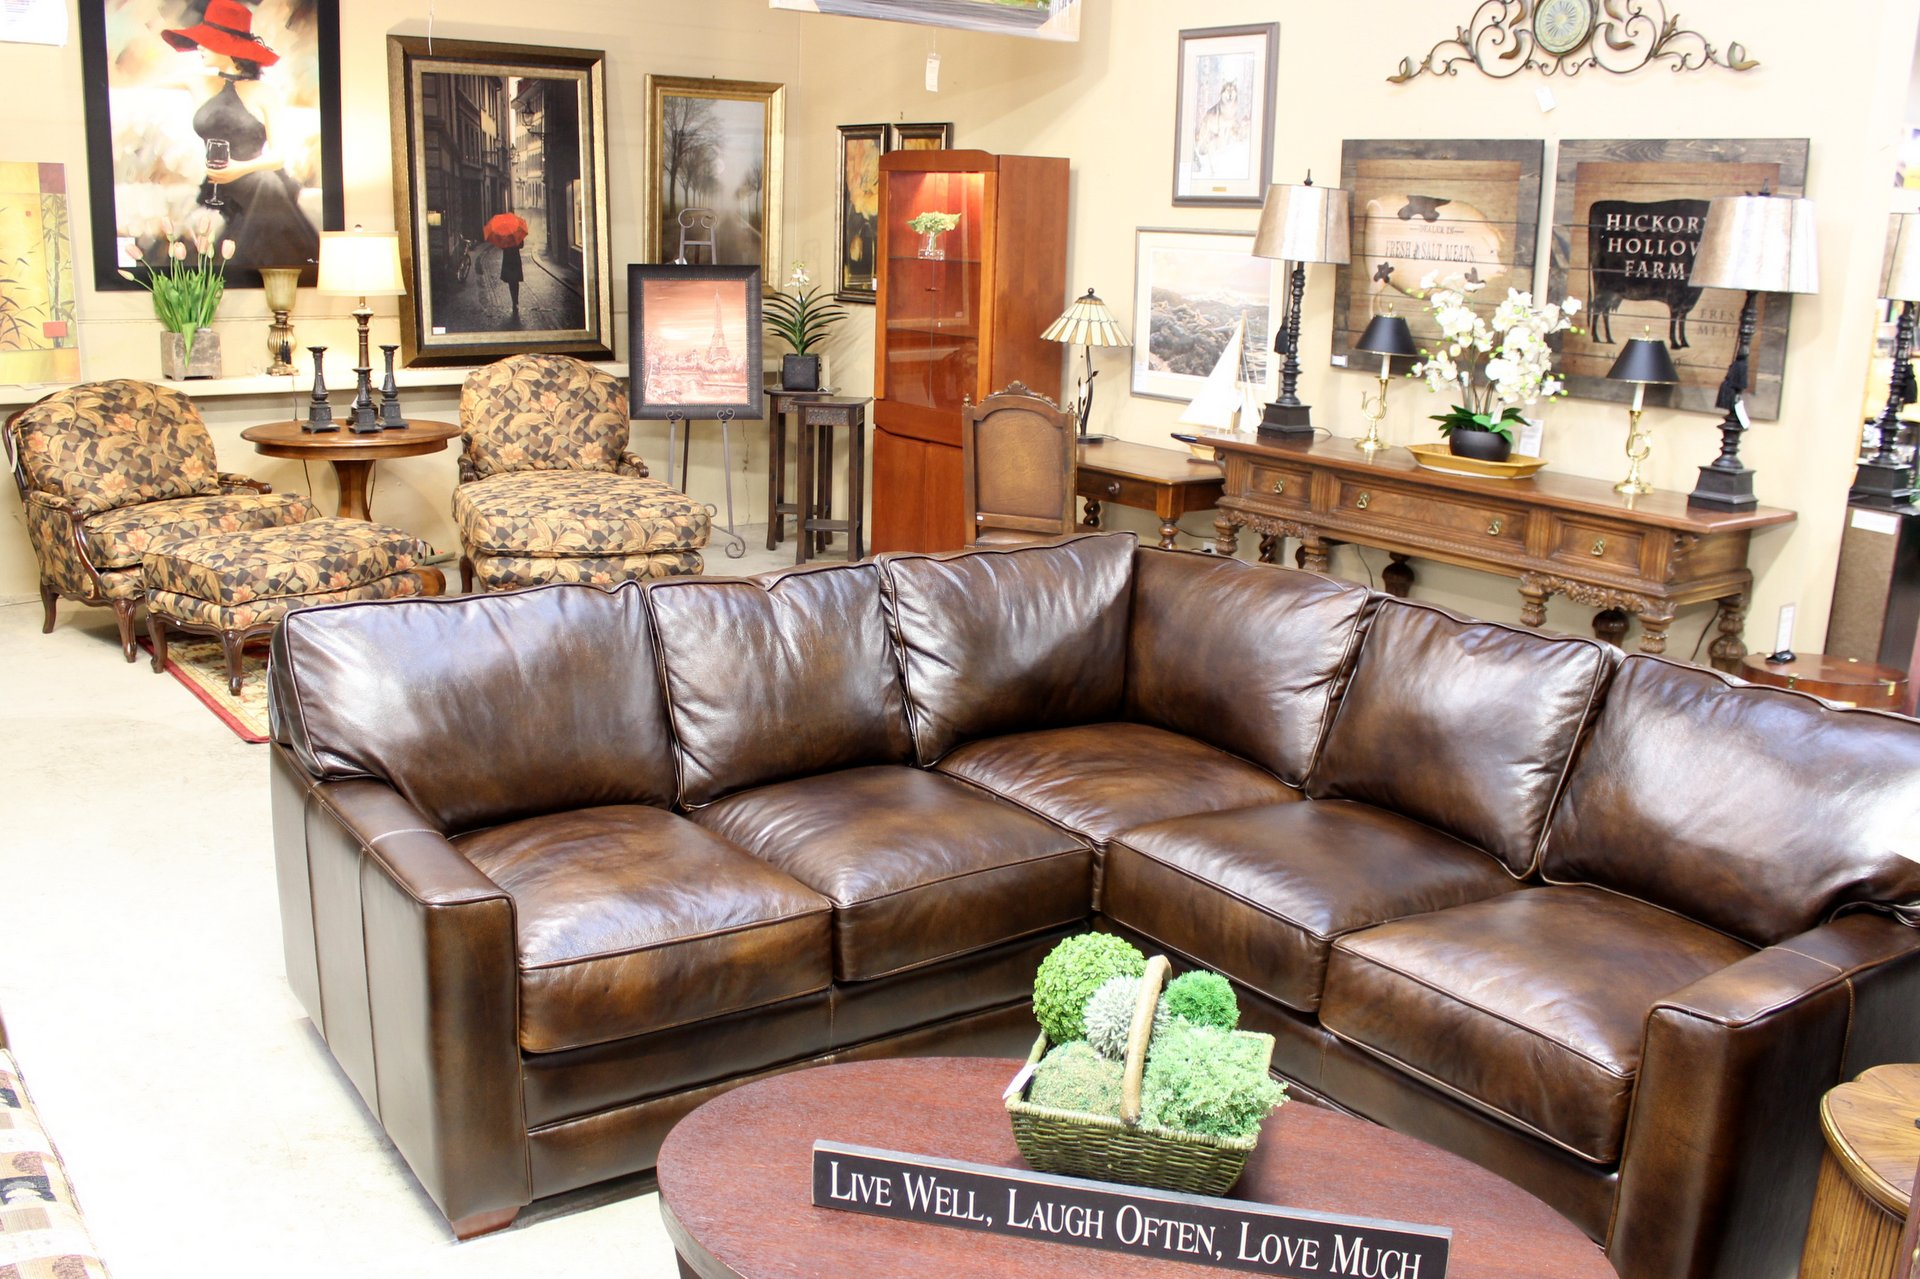 Second Hand Furniture Stores Near Me New Upscale Consignment  Upscale Used Furniture & Decor Decorating Design